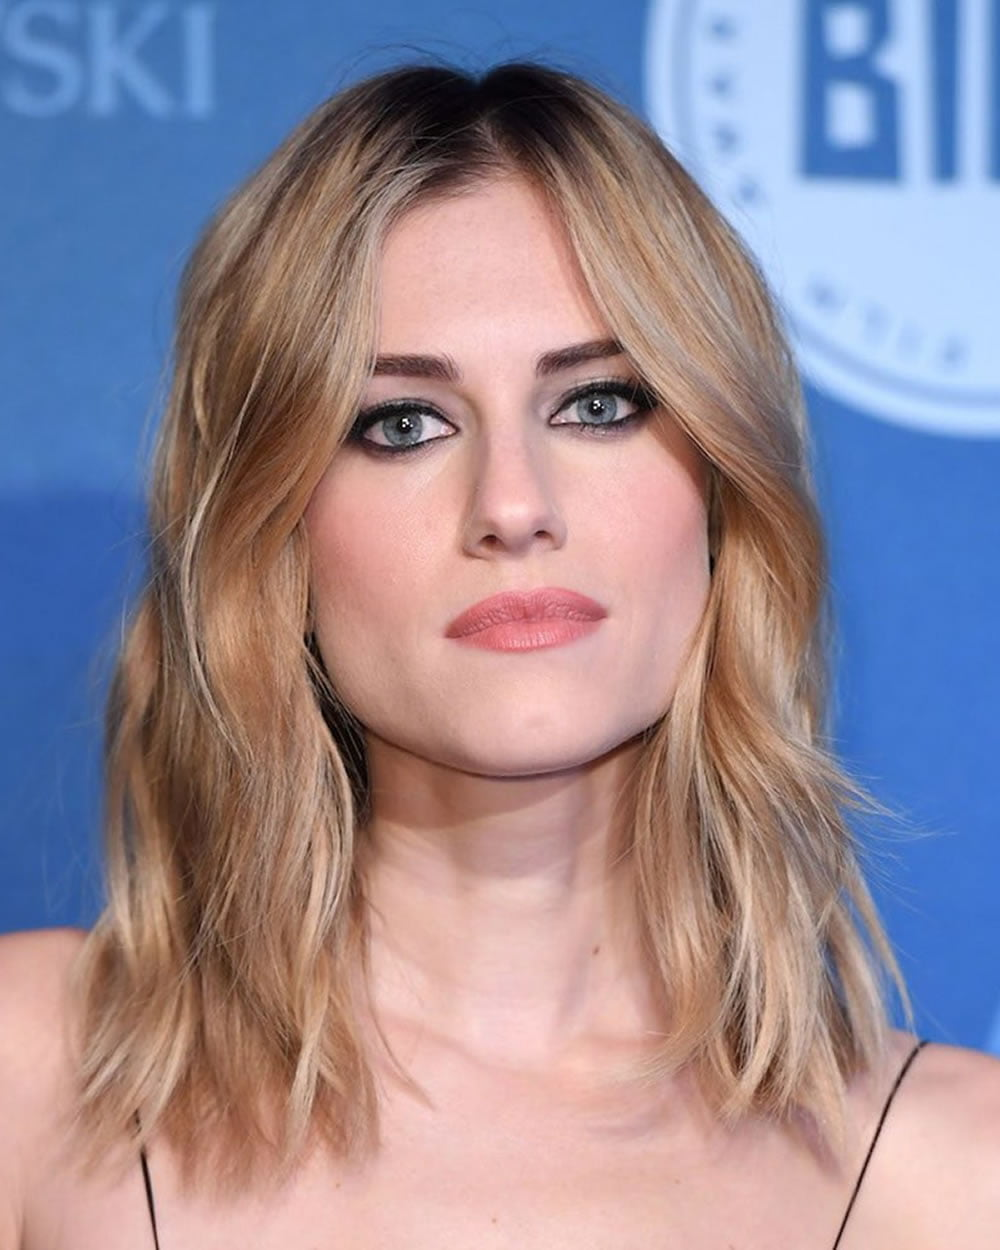 Trendy Hair Color: Short Haircuts for Straight Hair recommendations